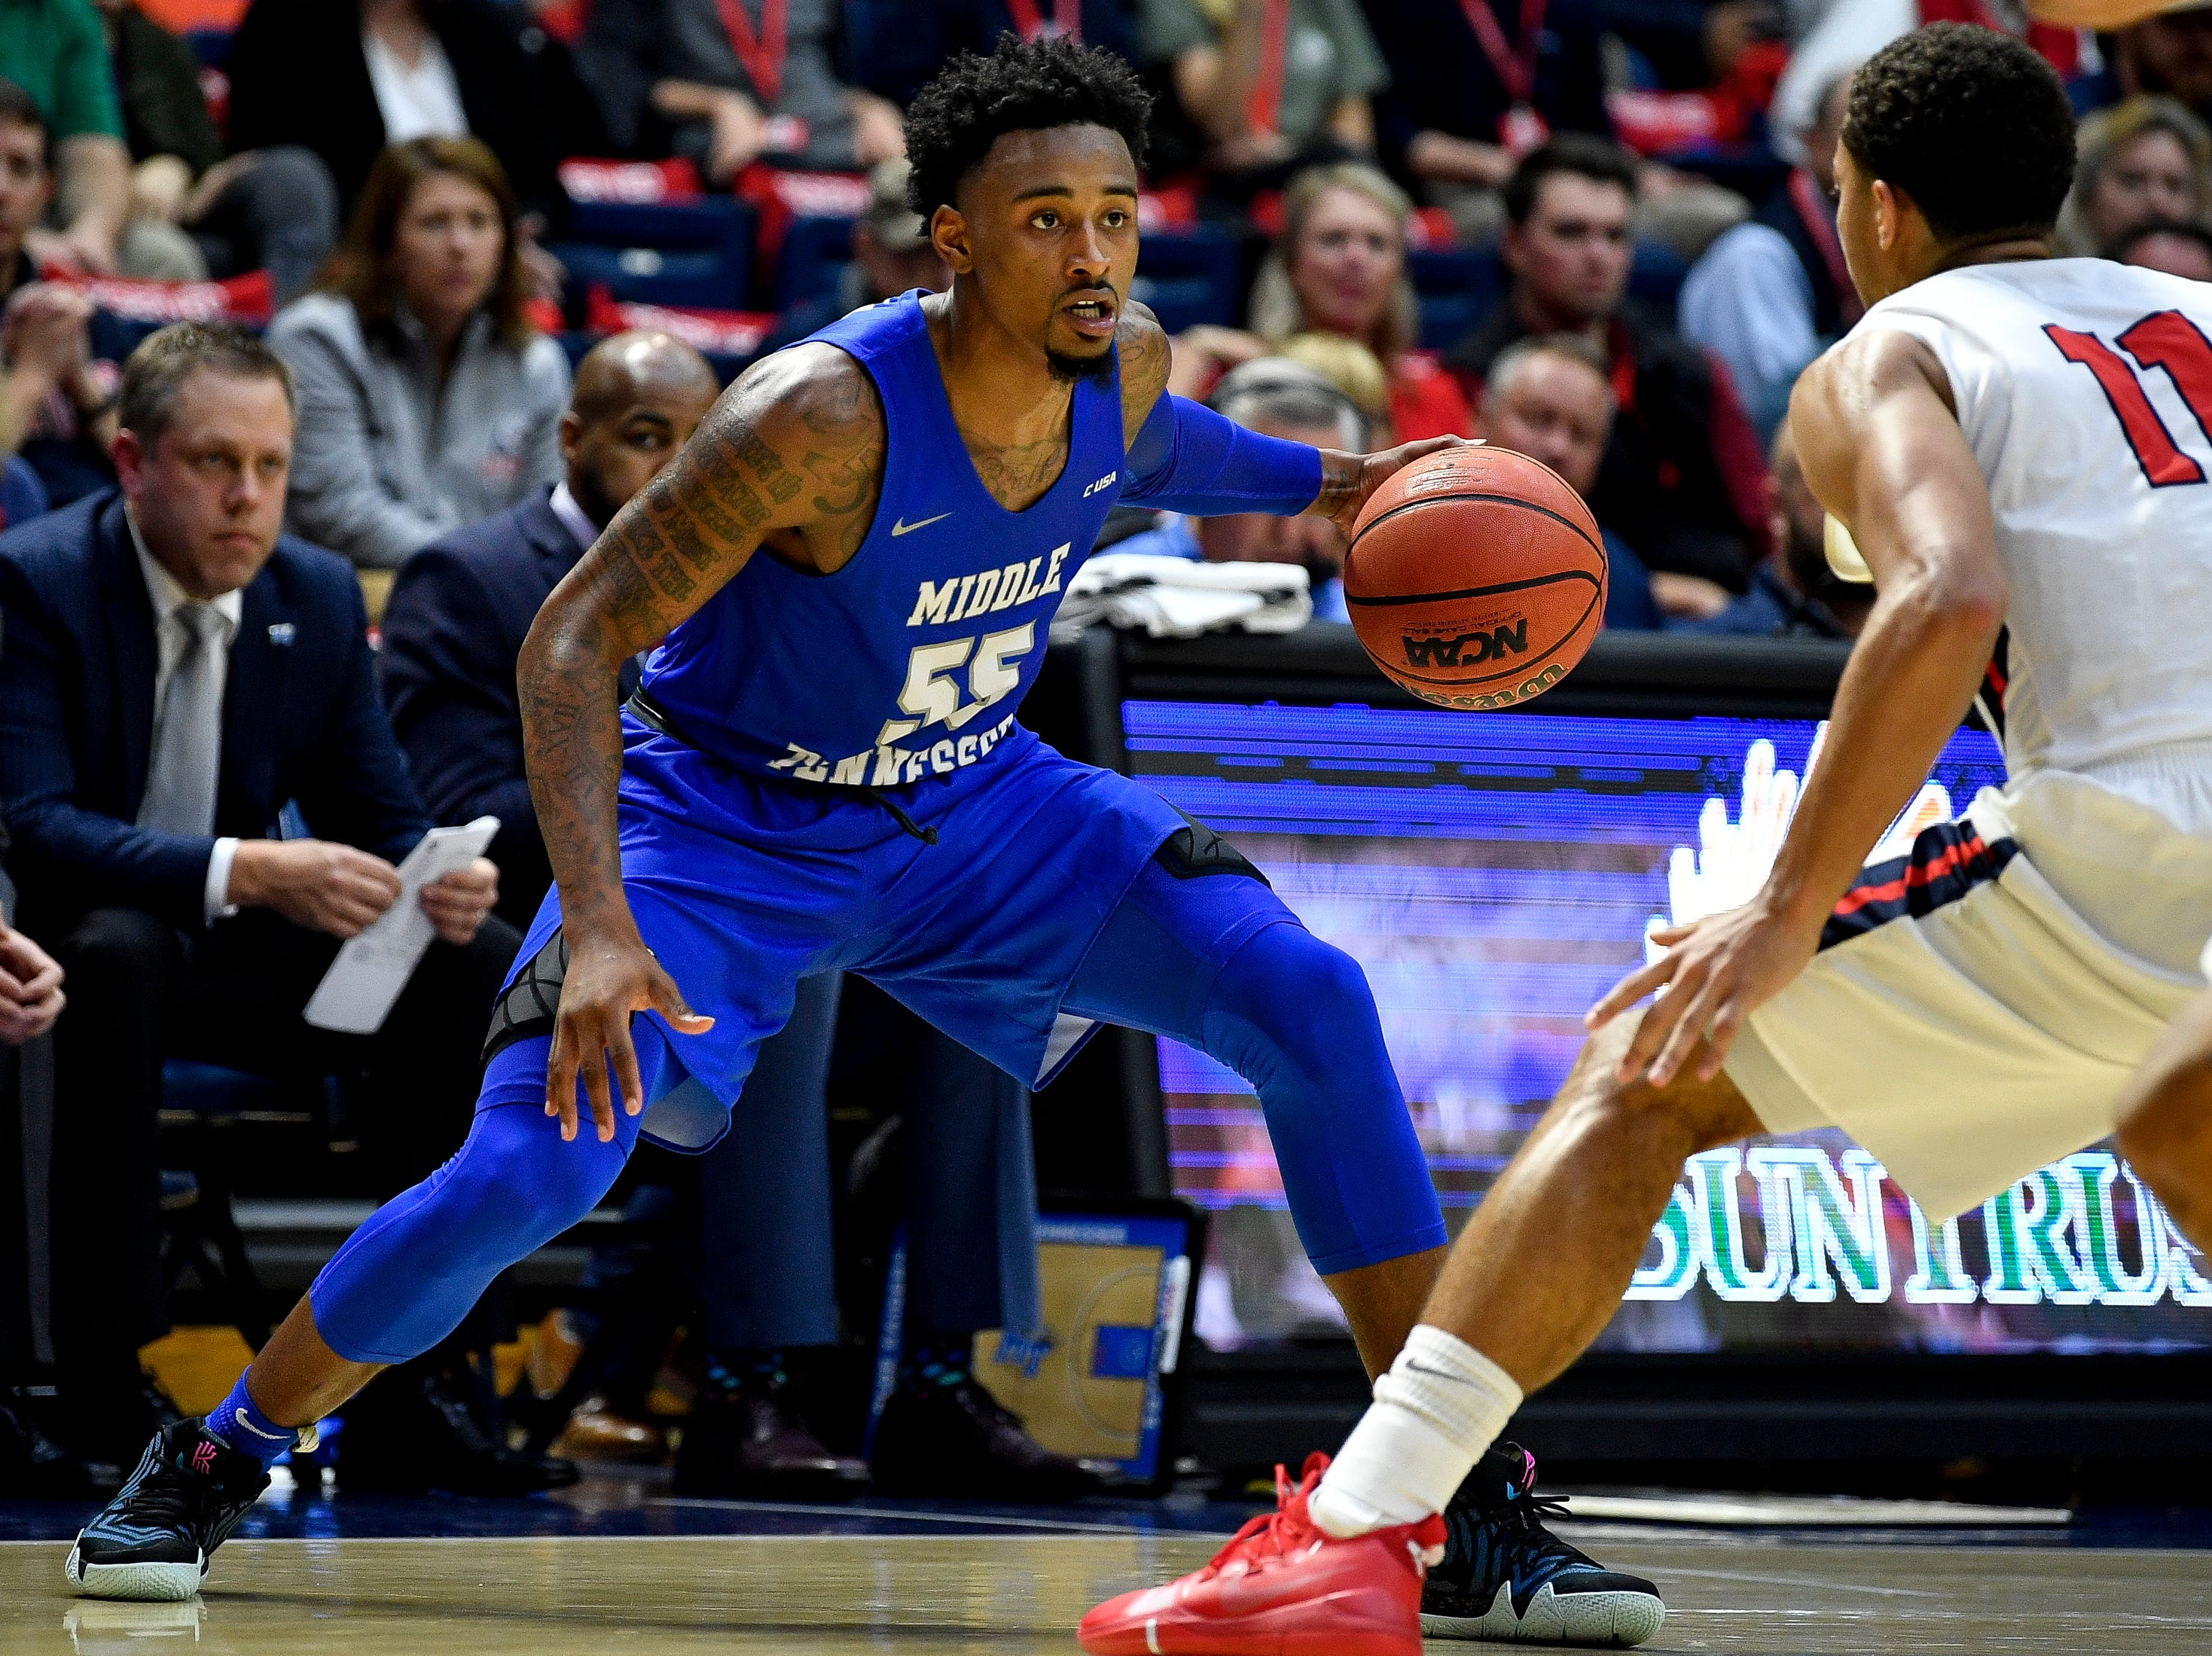 MTSU guard Antonio Green (55) looks for an opening past Belmont guard Kevin McClain (11) during the second half at the Curb Event Center Arena in Nashville, Tenn., Monday, Nov. 12, 2018.